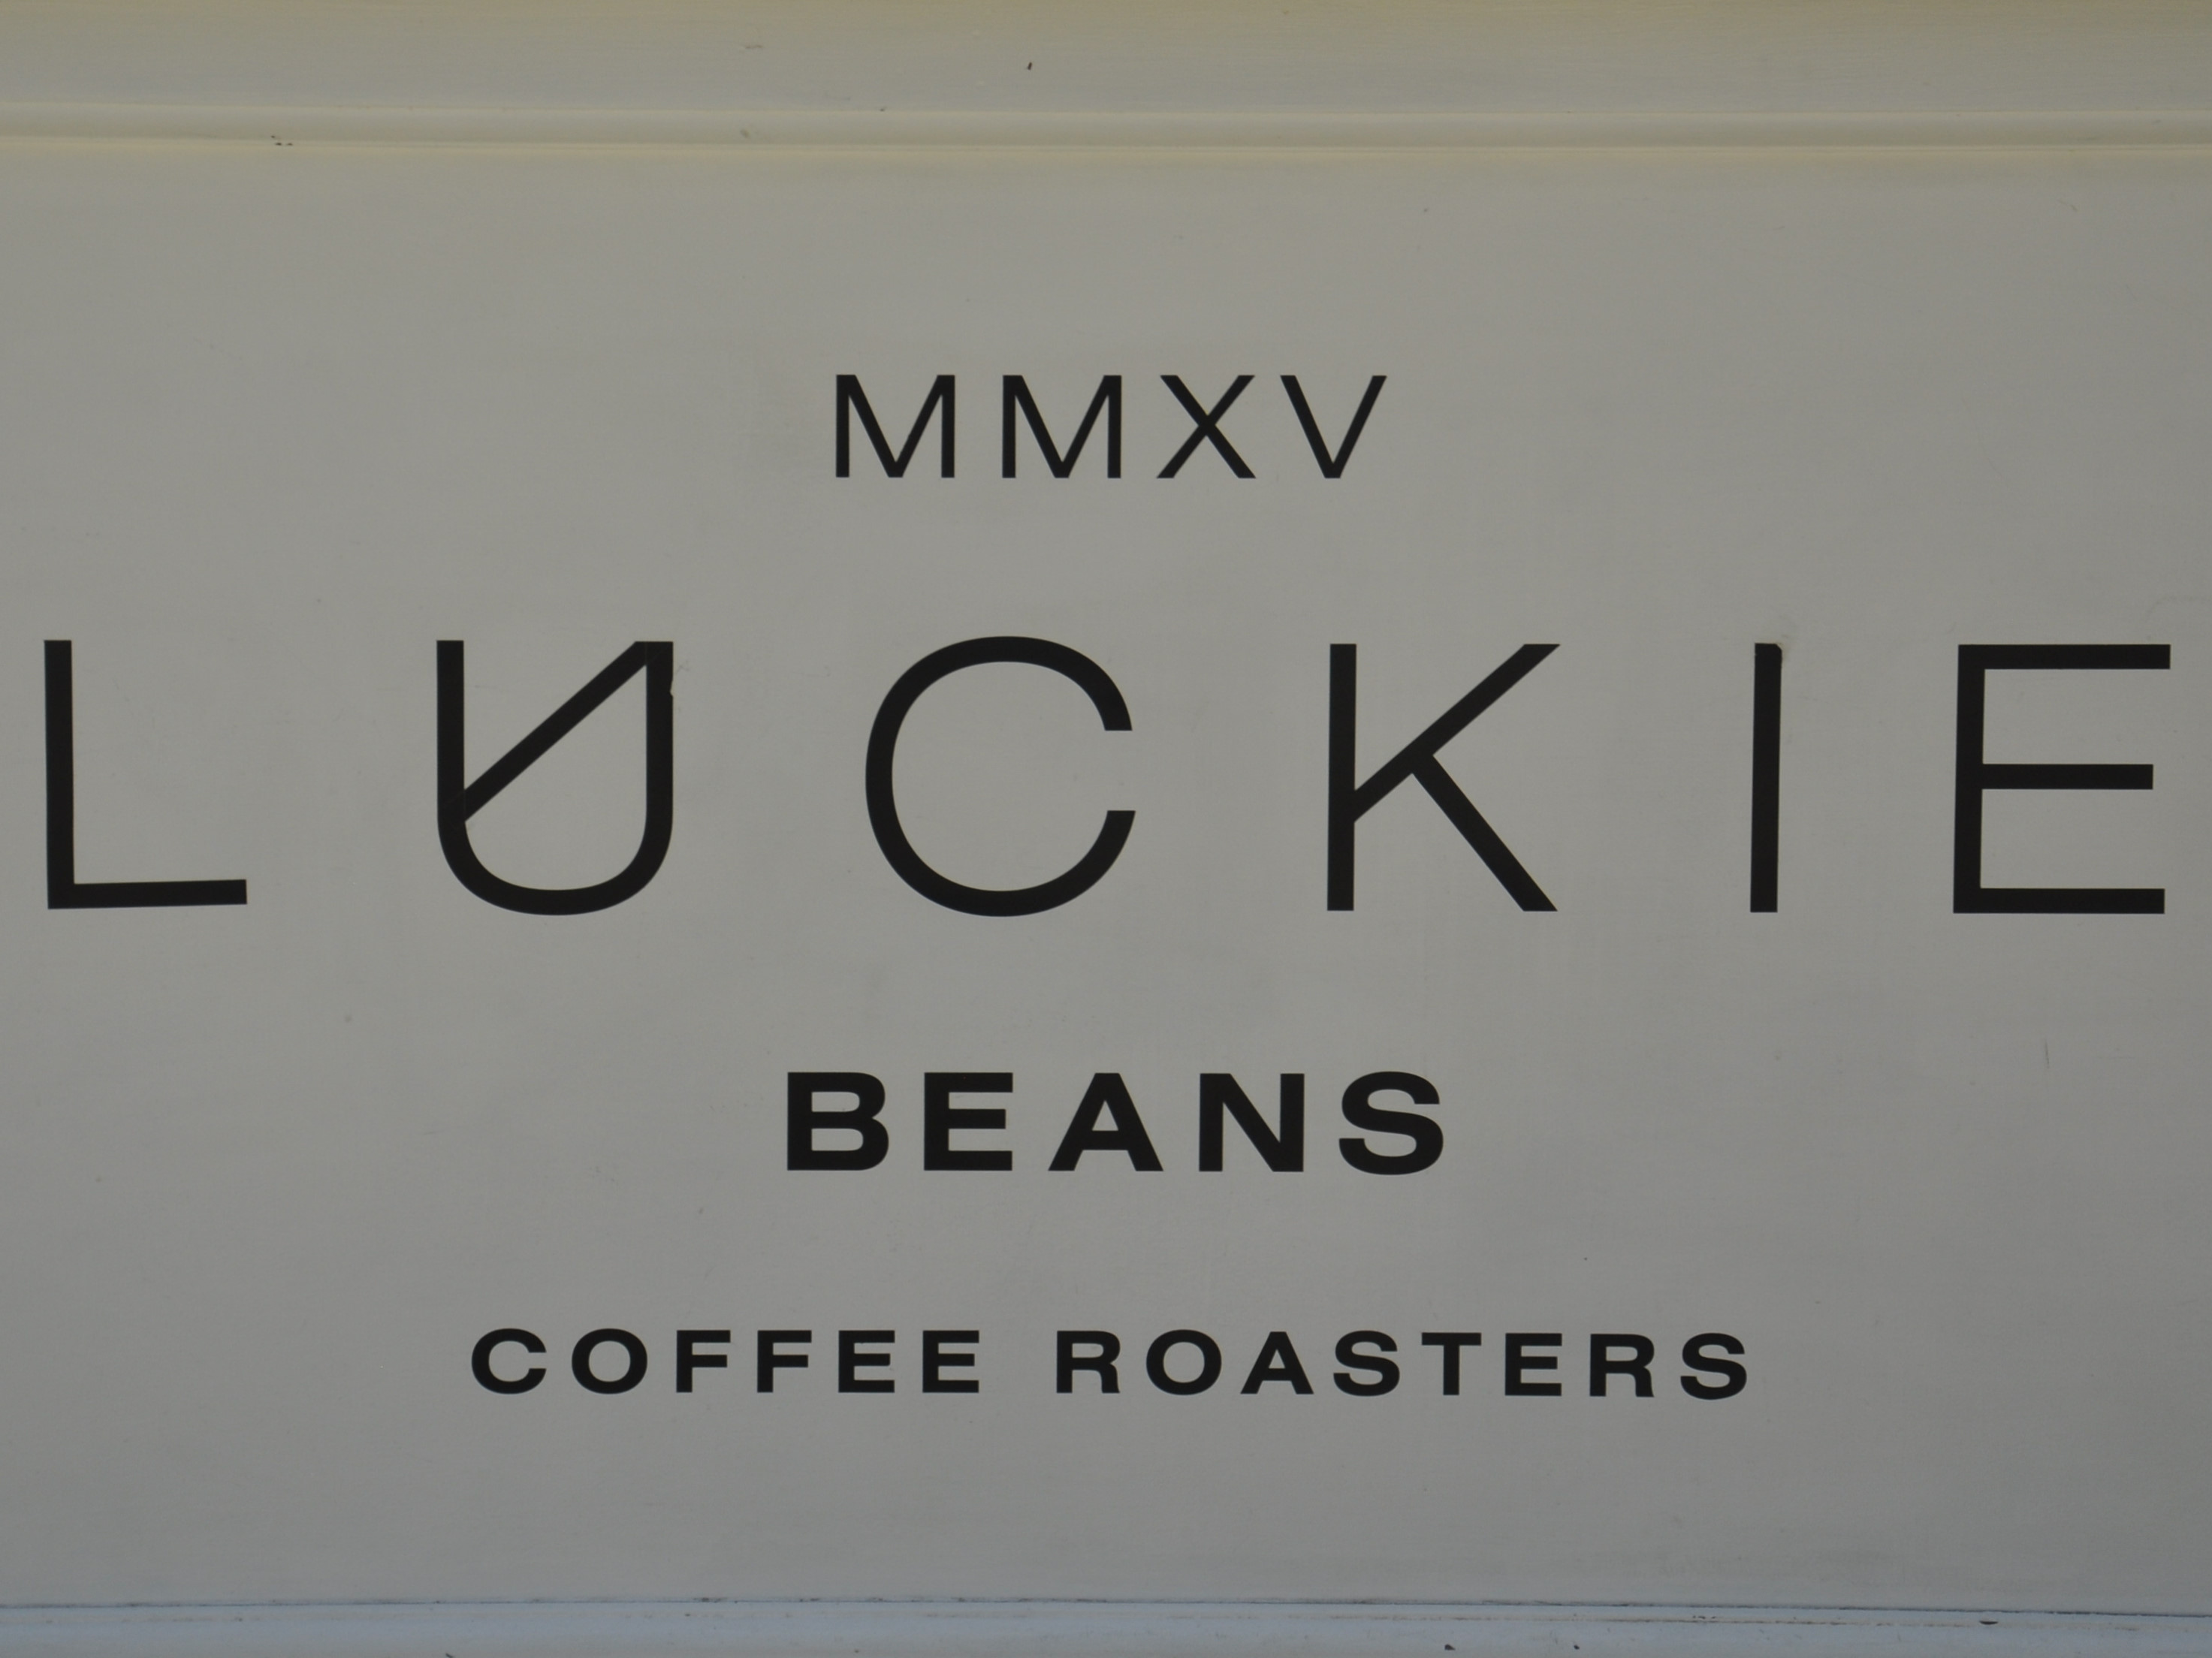 Detail from the front of the Luckie Beans coffee cart on the concourse of Glasgow's Queen Street Station.